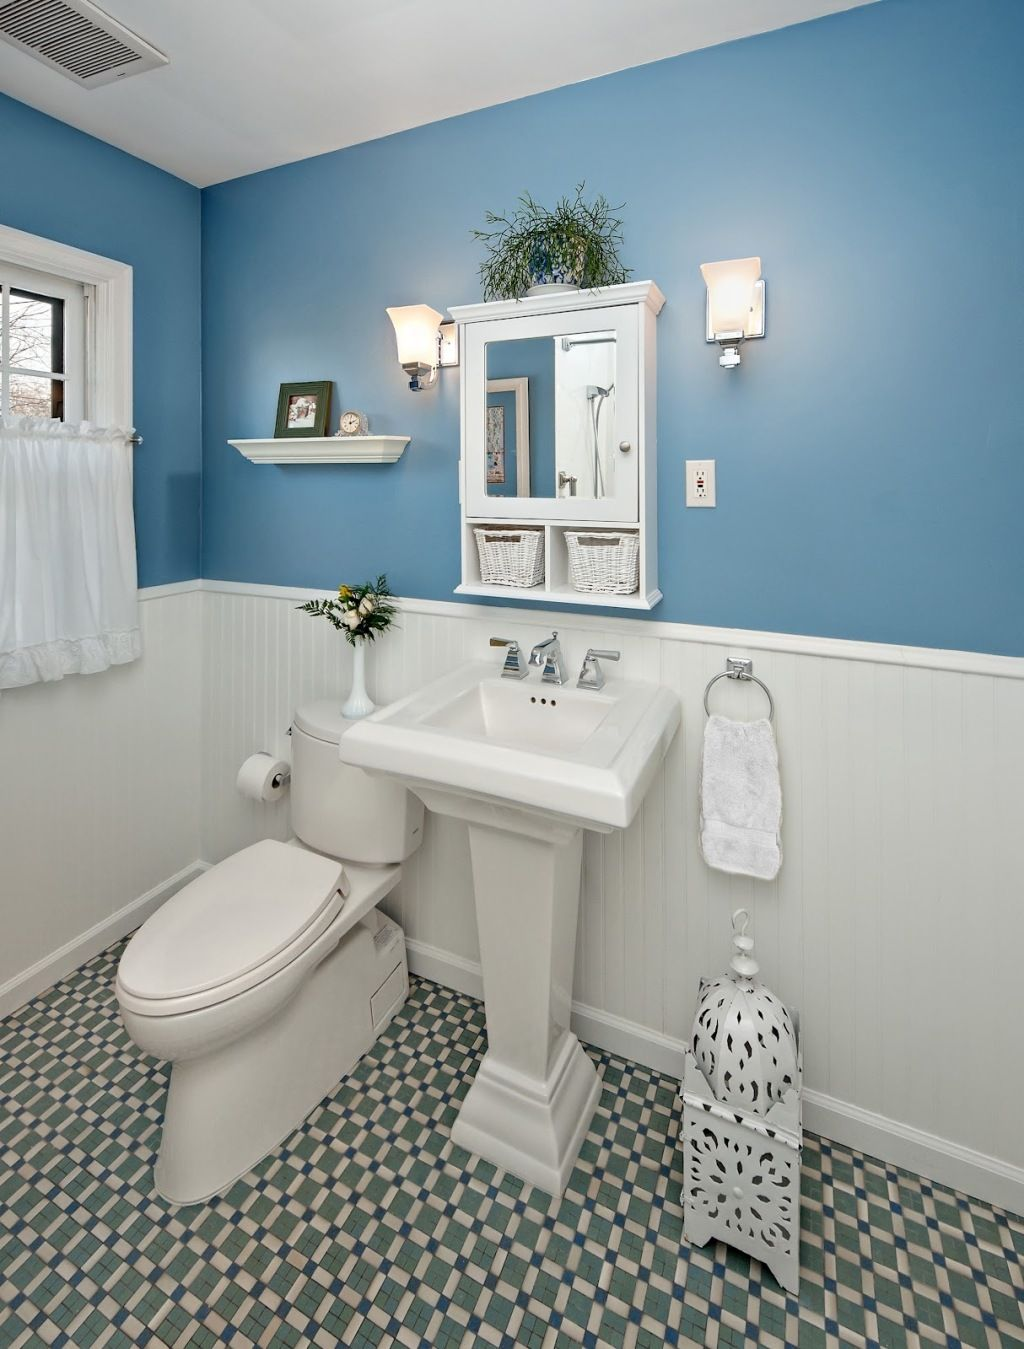 Bathroom Design Rochester Ny chic bathroom design with two color combination cadet blue and